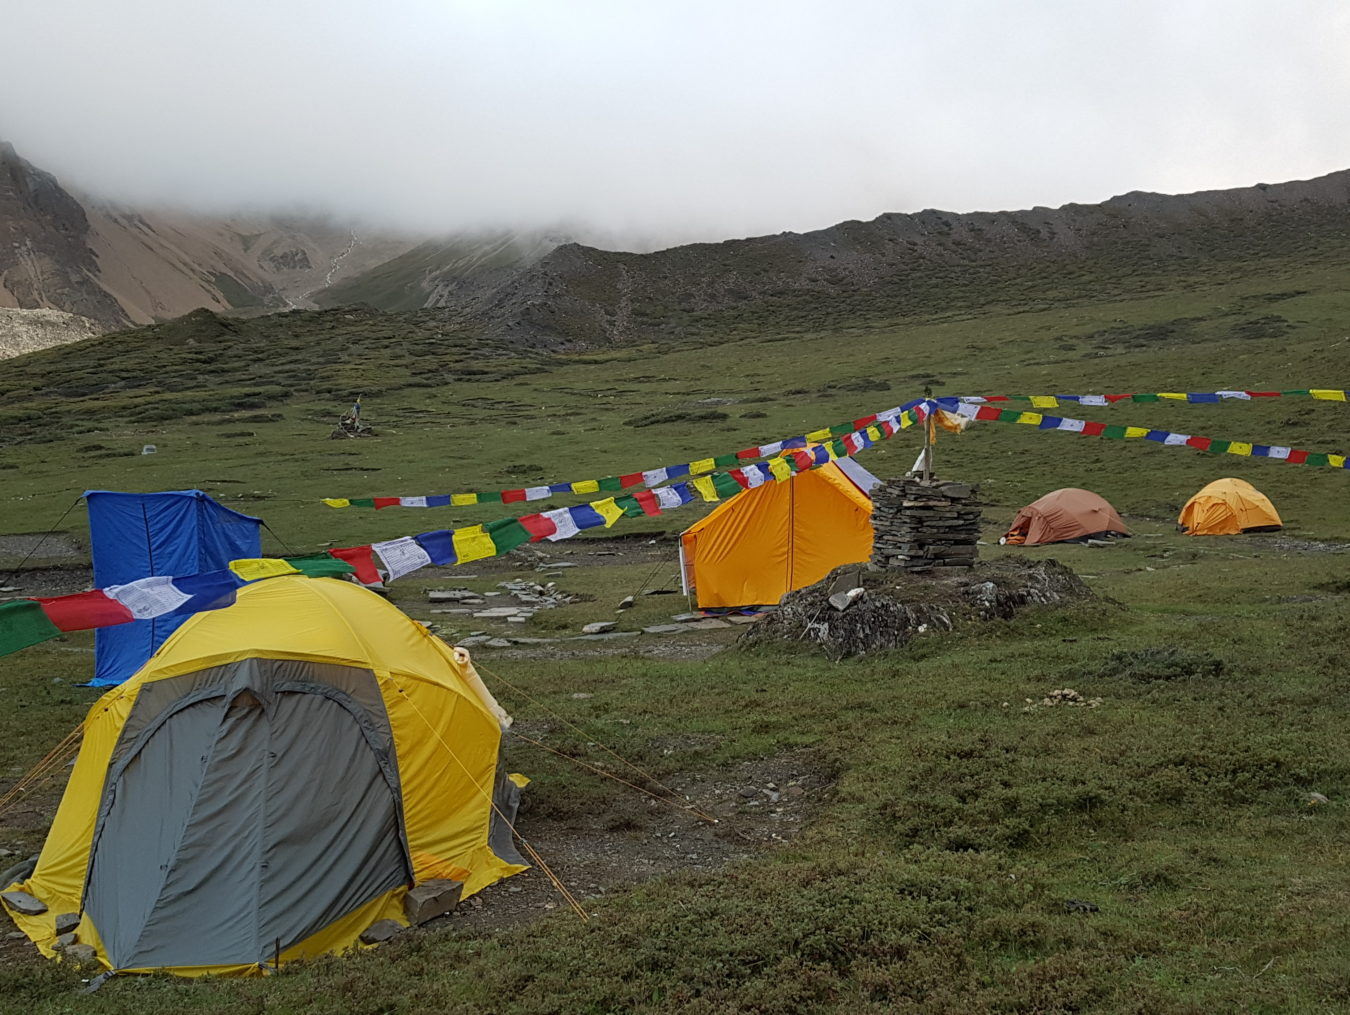 Base camp beside the colorful prayer flag pole at the foot of himalayas mountain